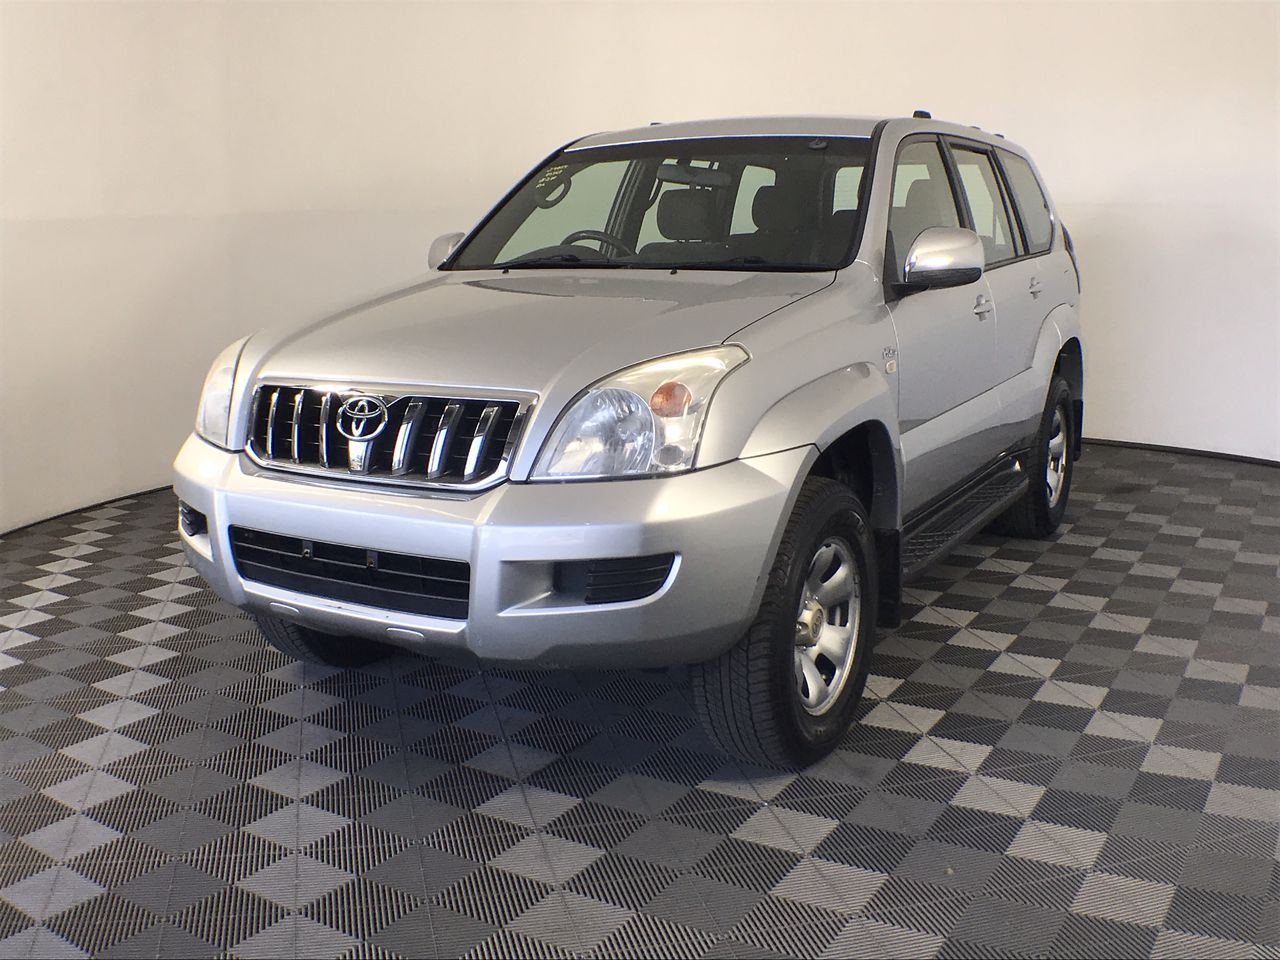 2007 Toyota Landcruiser Prado GX (4x4) Turbo Diesel Manual 7 Seats Wagon